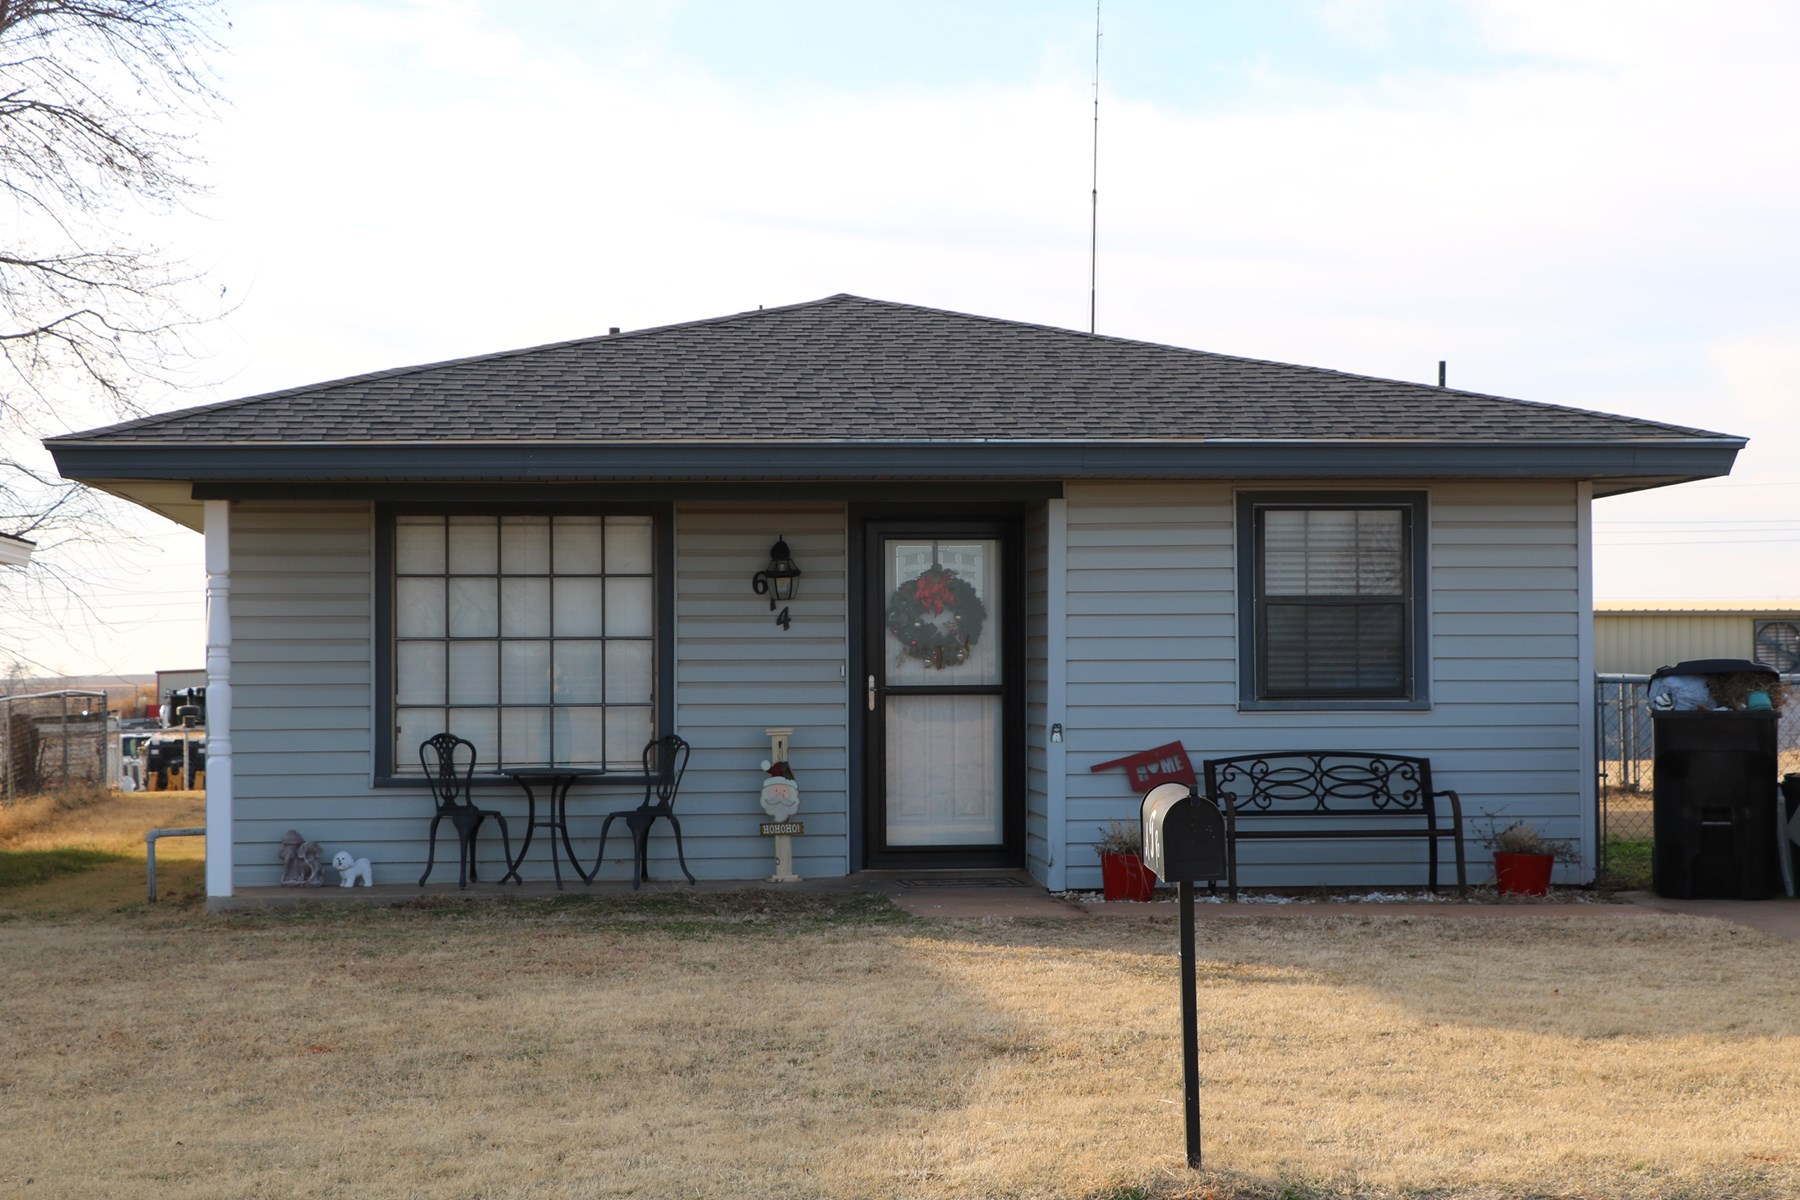 3 Bedroom Home for sale in Arapaho, OK